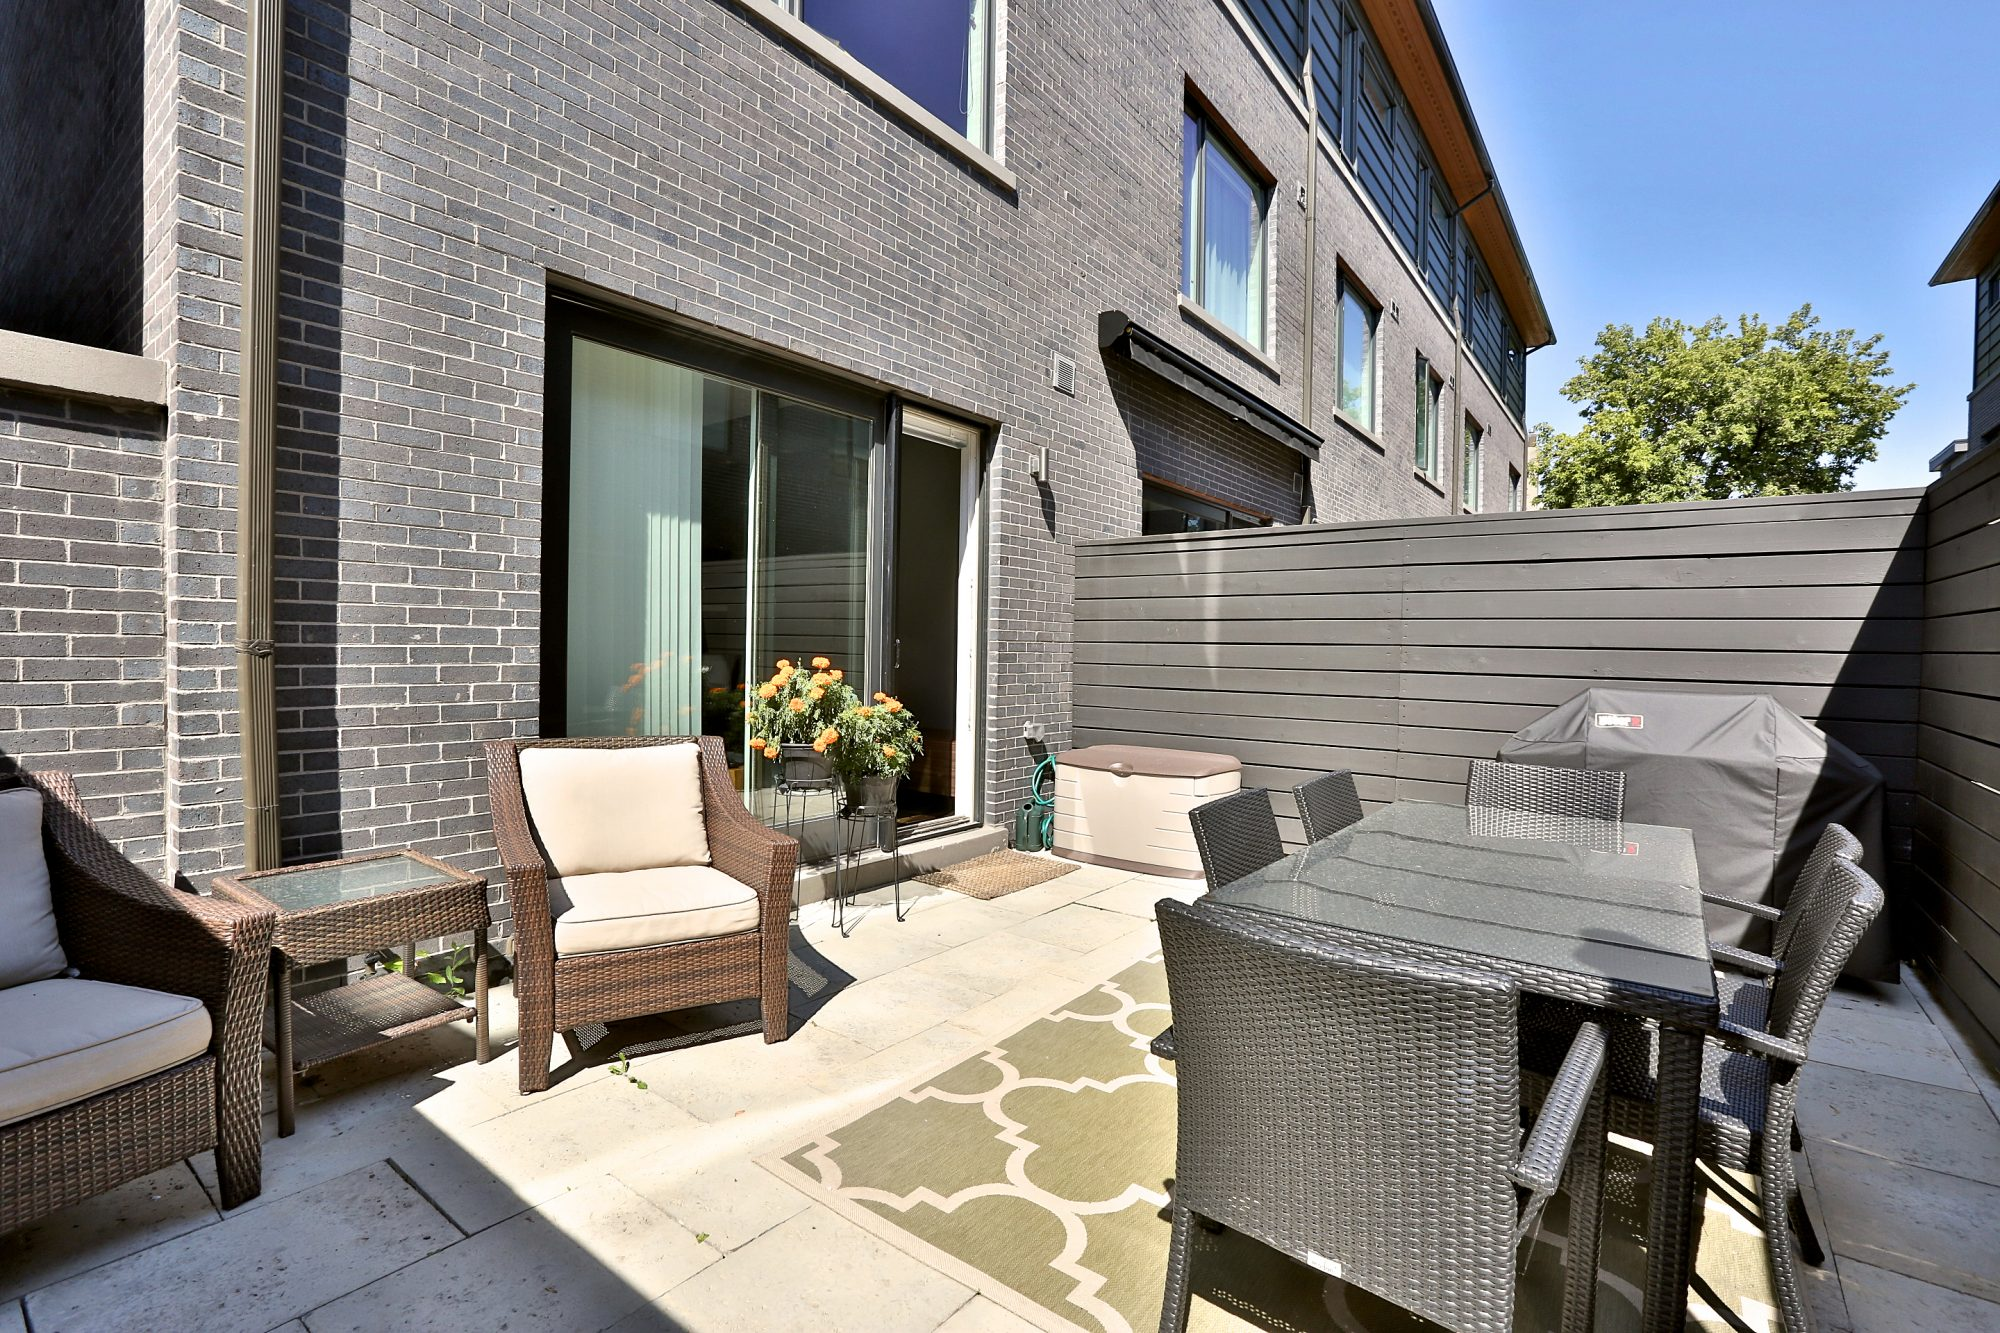 toronto-house-of-the-week-241-claremont-avenue-13